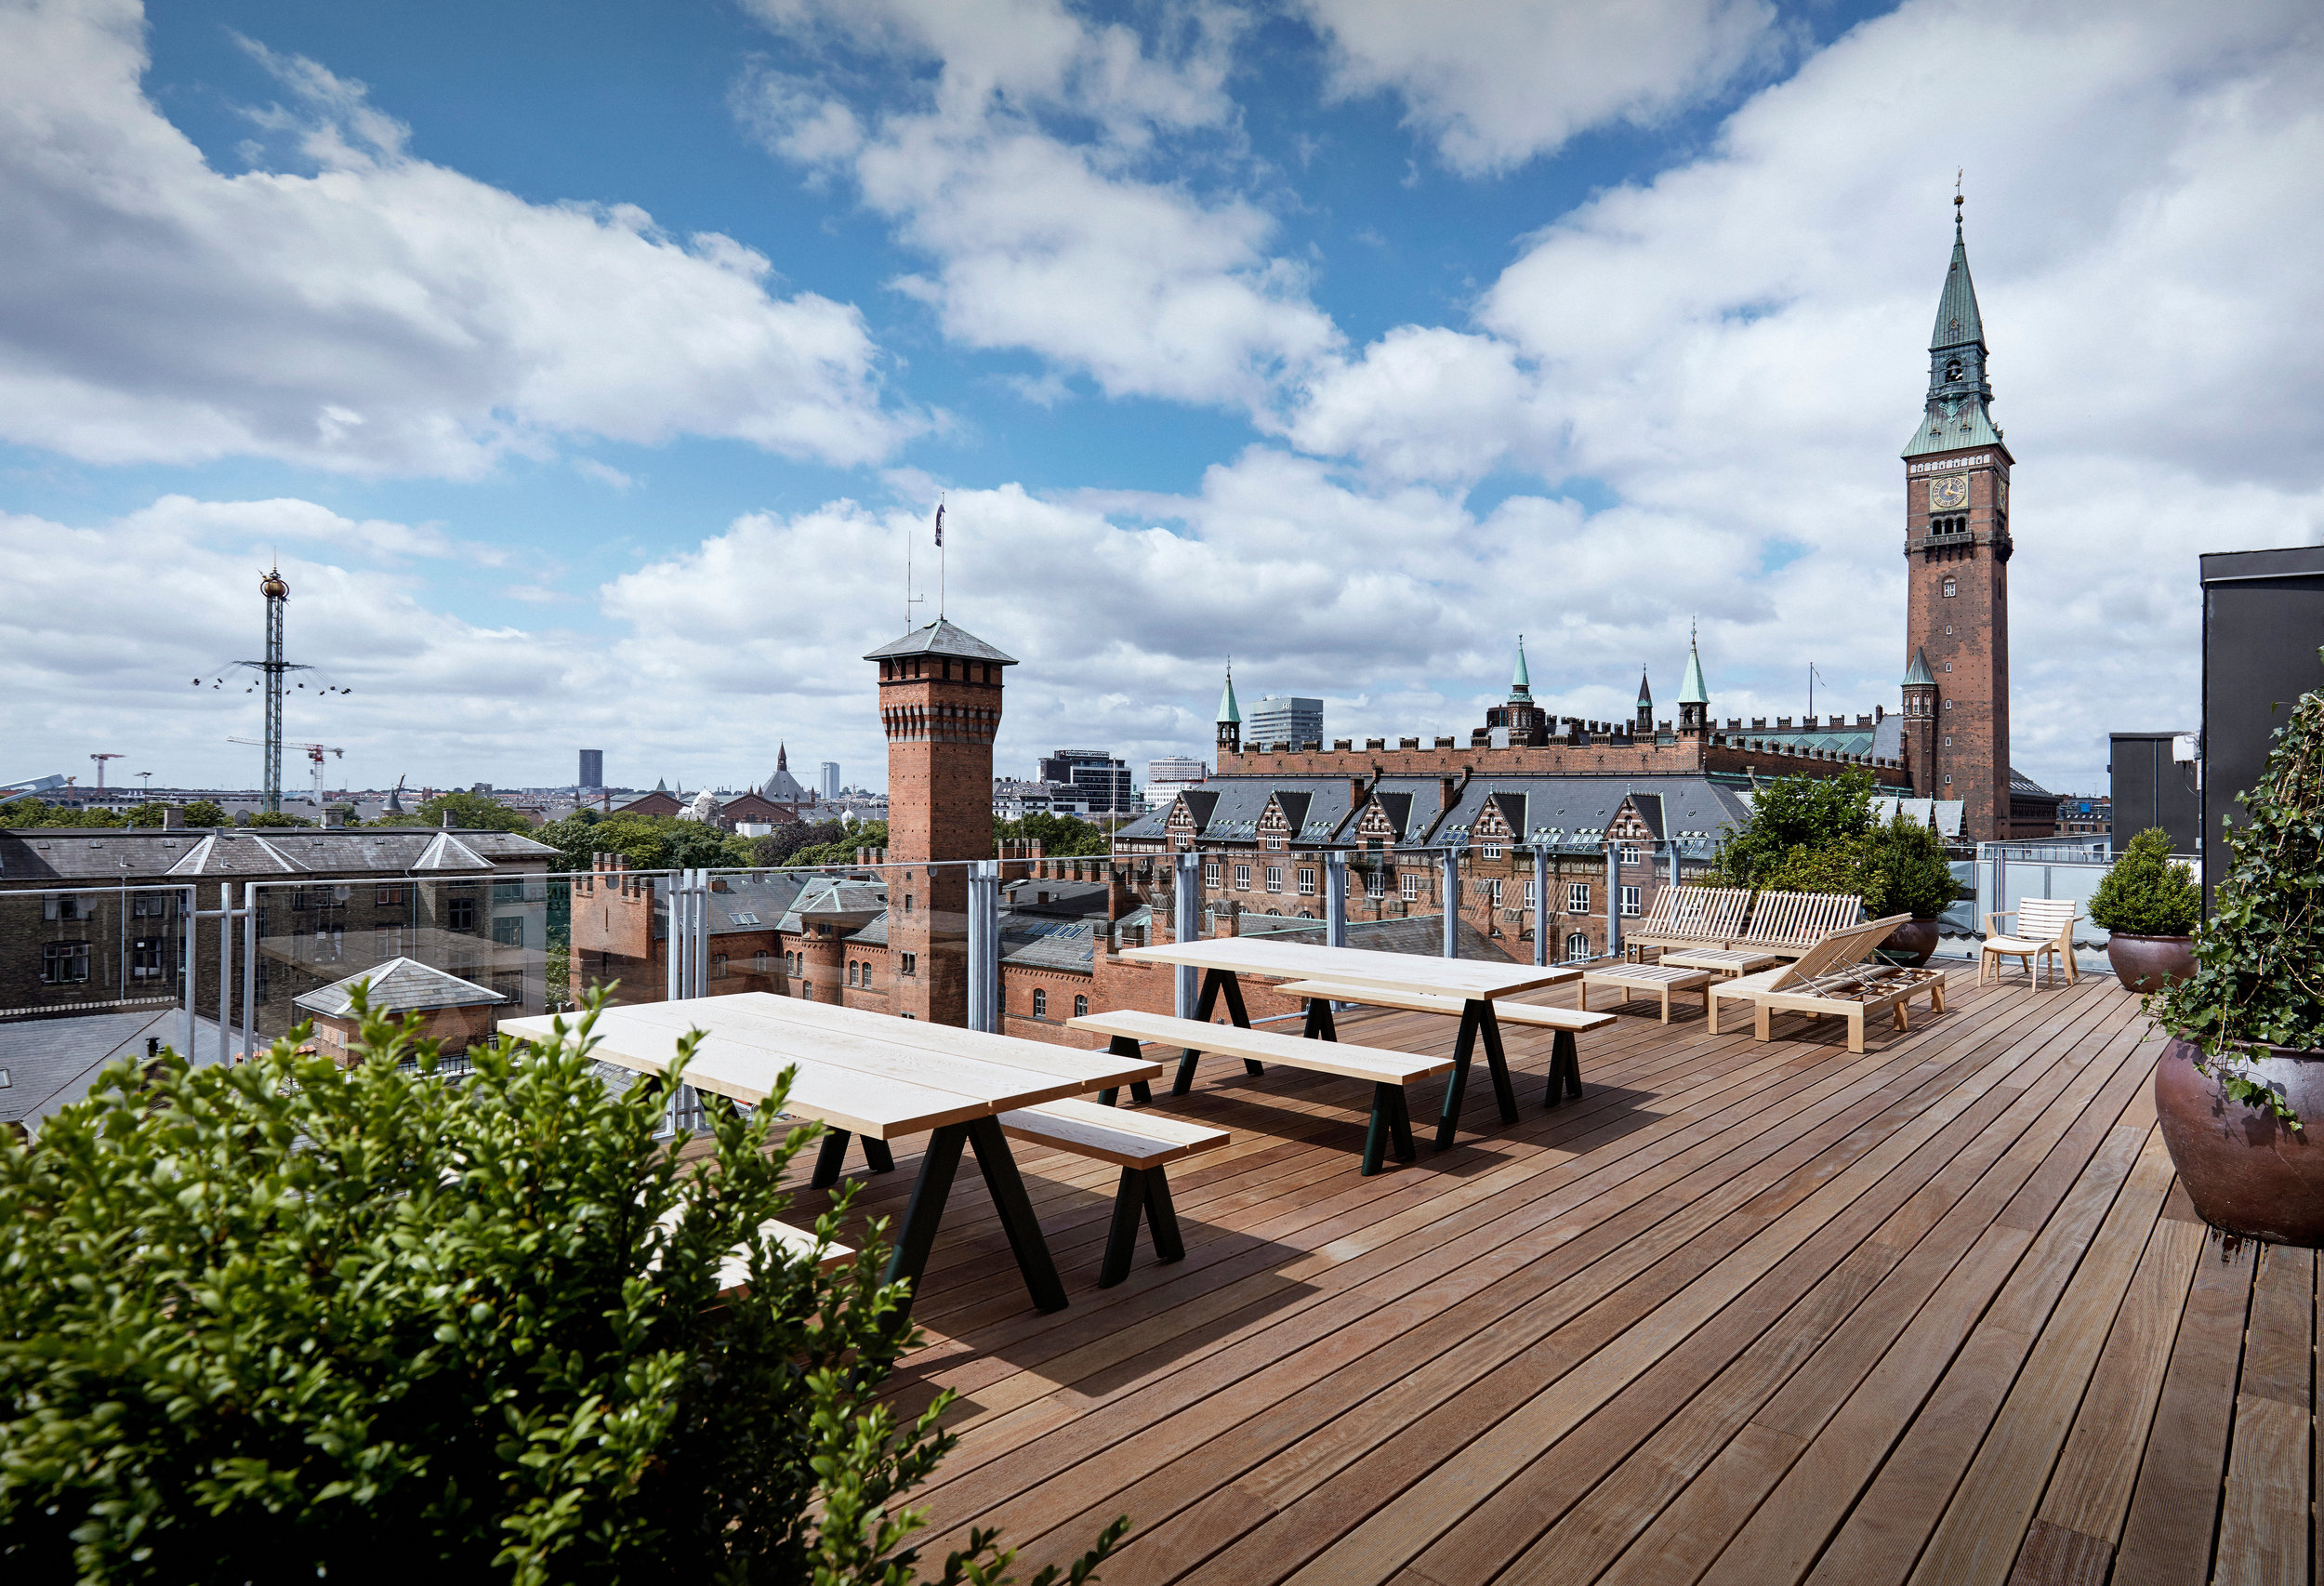 The rooftop view from above      Hotel Danmark     !